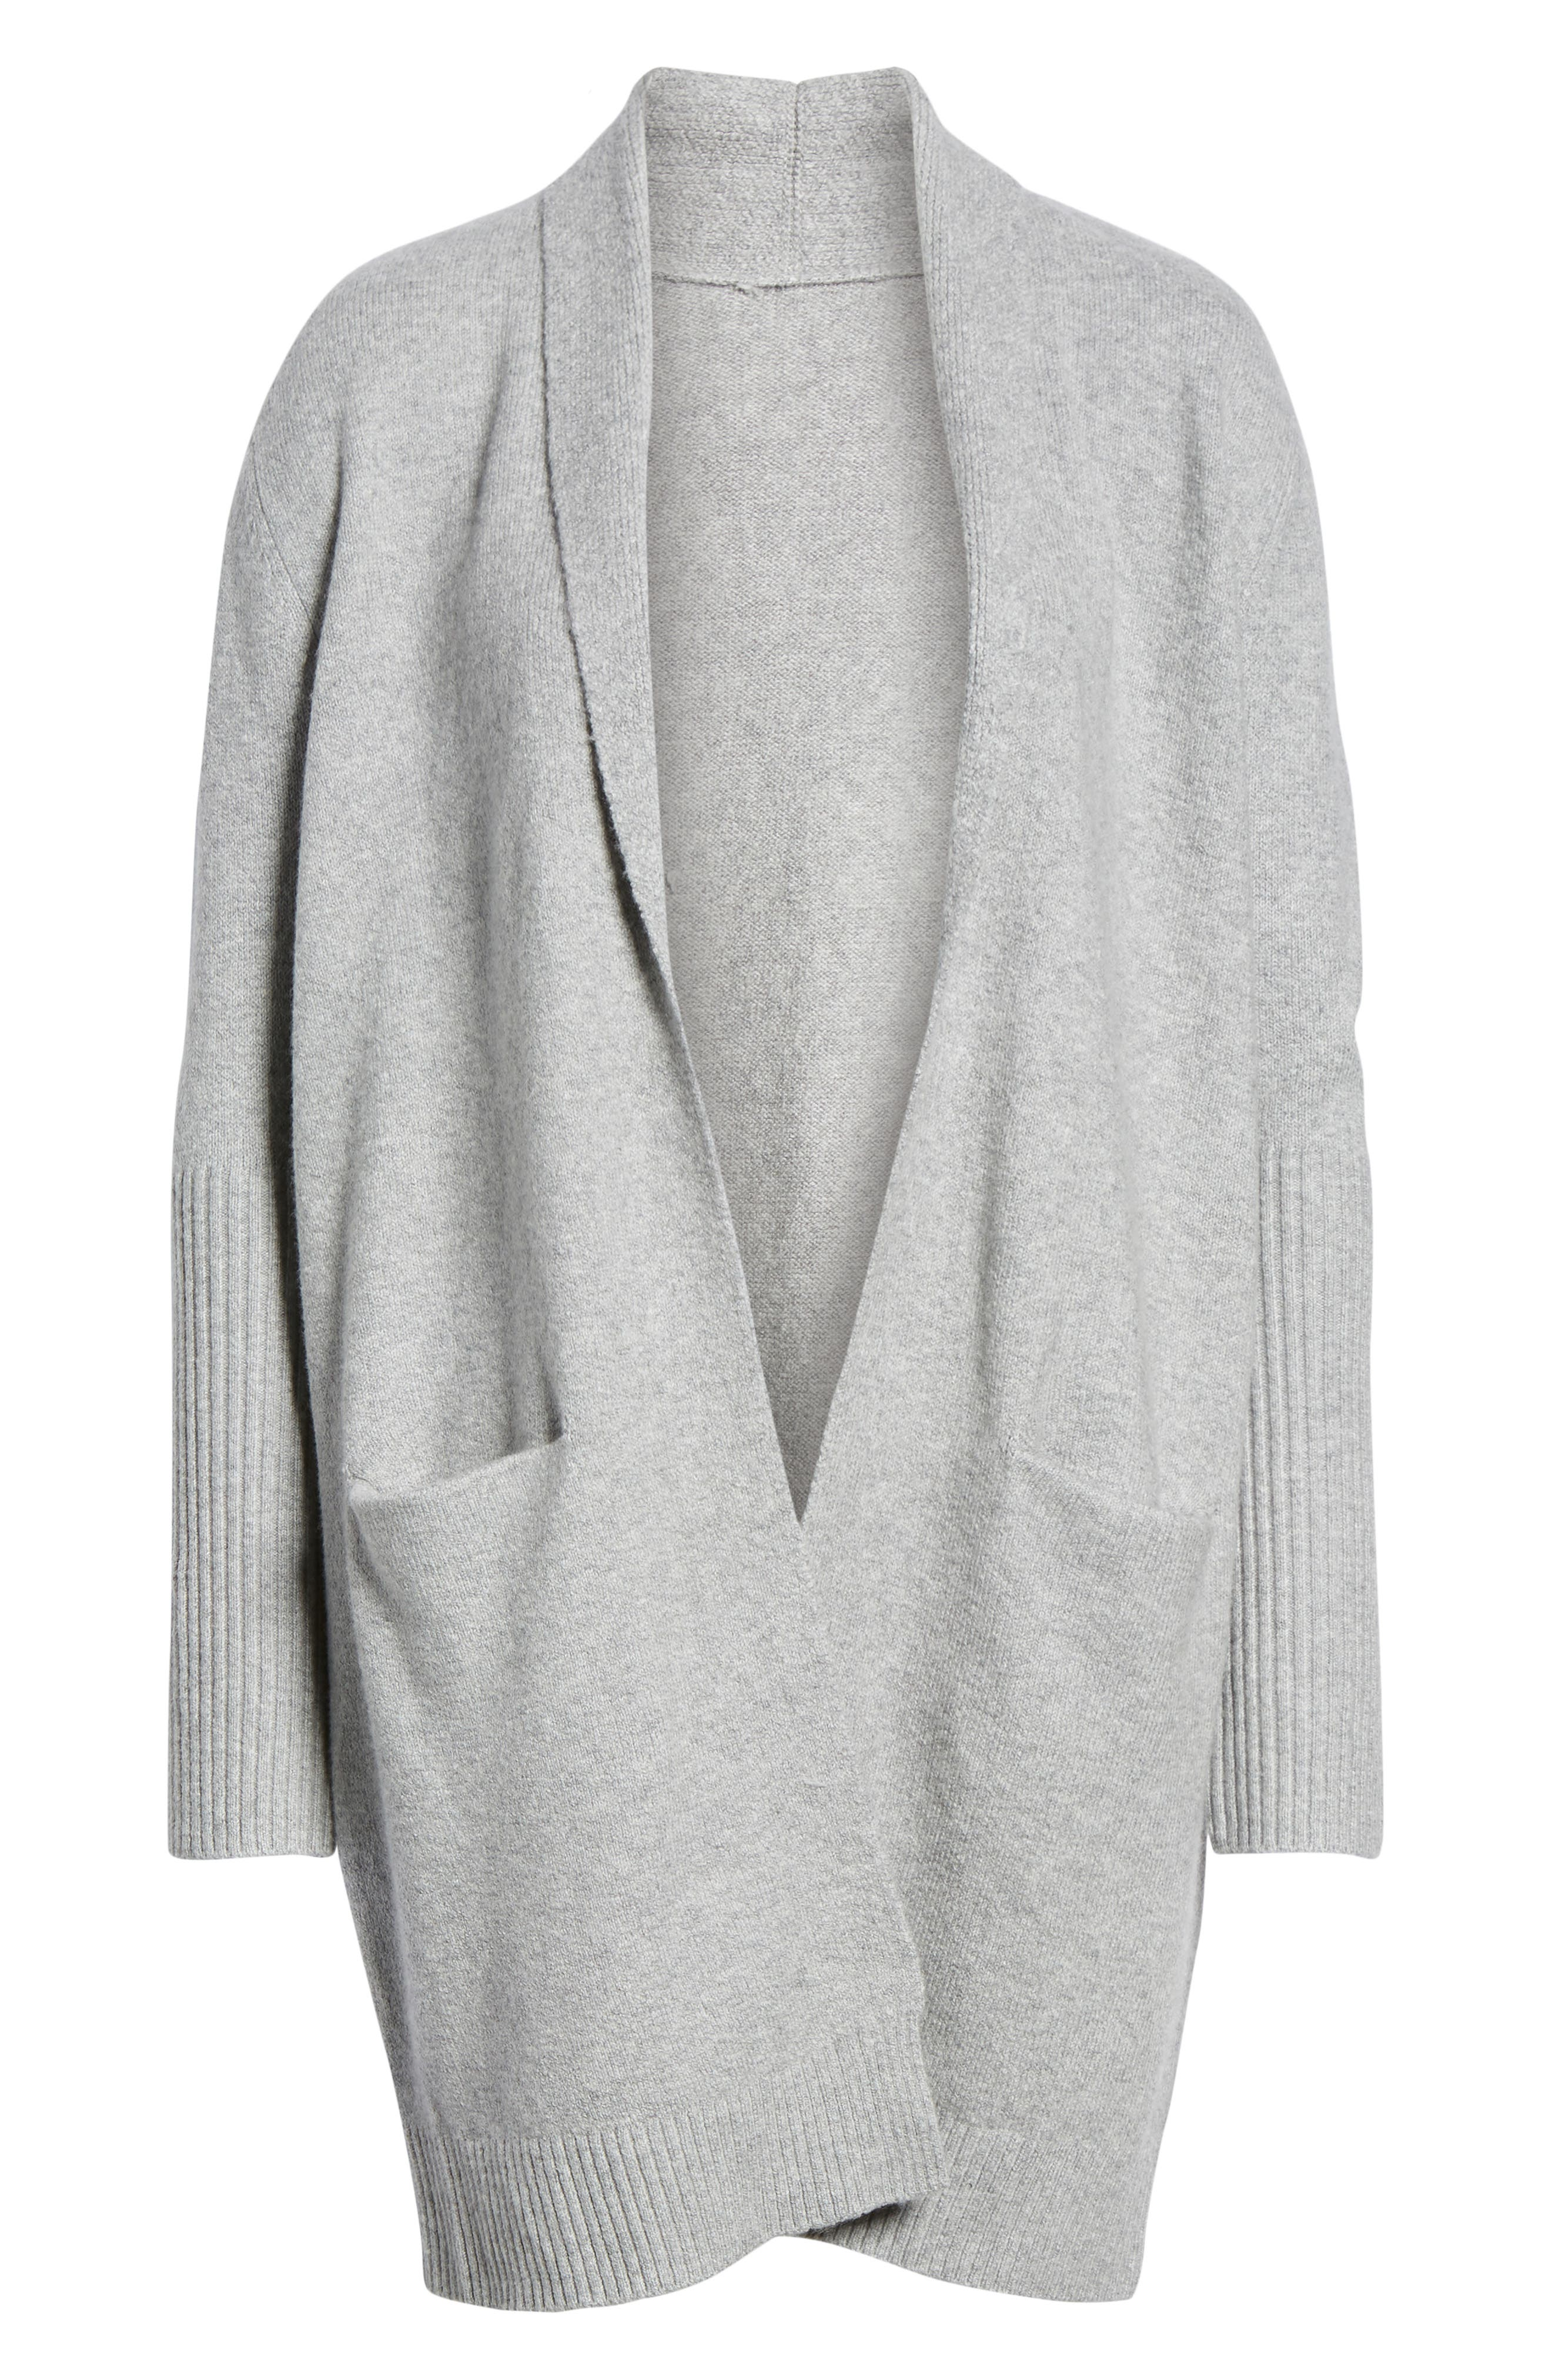 Rib Knit Detail Cardigan,                             Alternate thumbnail 6, color,                             GREY HEATHER